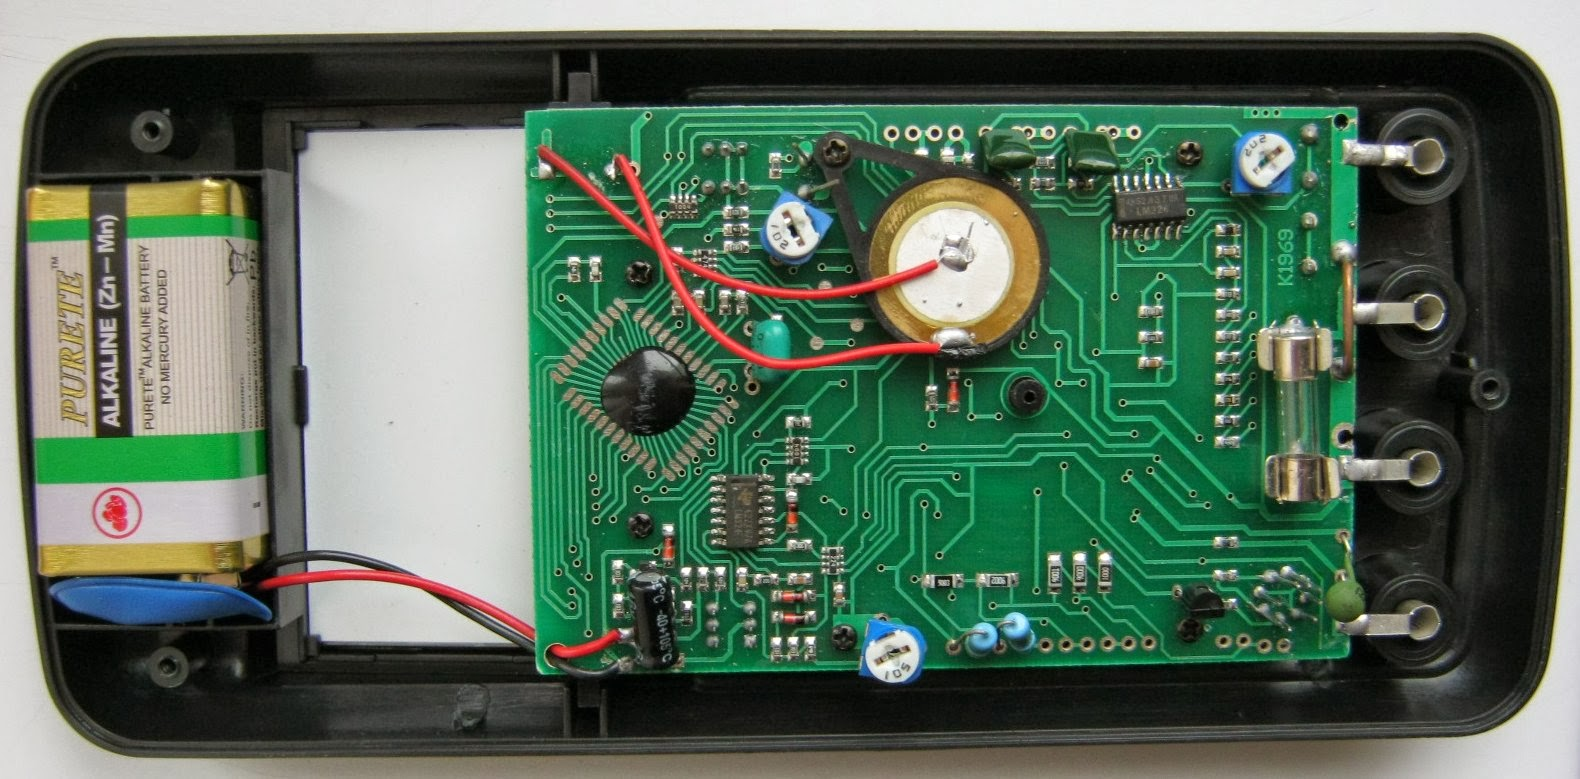 Common Emitter Dt9205a Multimeter Review Icl7106 Digital Voltmeter Circuit Schematic For Those Is Easy To Find And Seems More Or Less Matching This One Main Difference Using 4 Dual Instead Of 2 Quad Operational Amplifiers